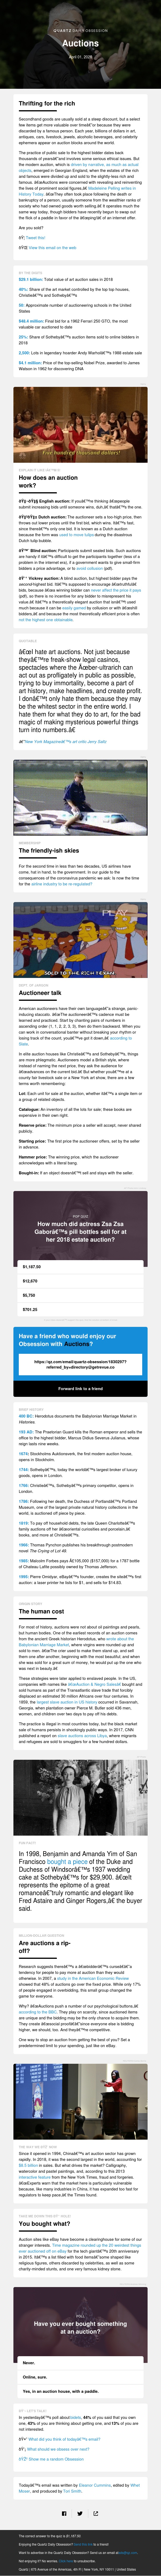 Auctions: How the other half bids